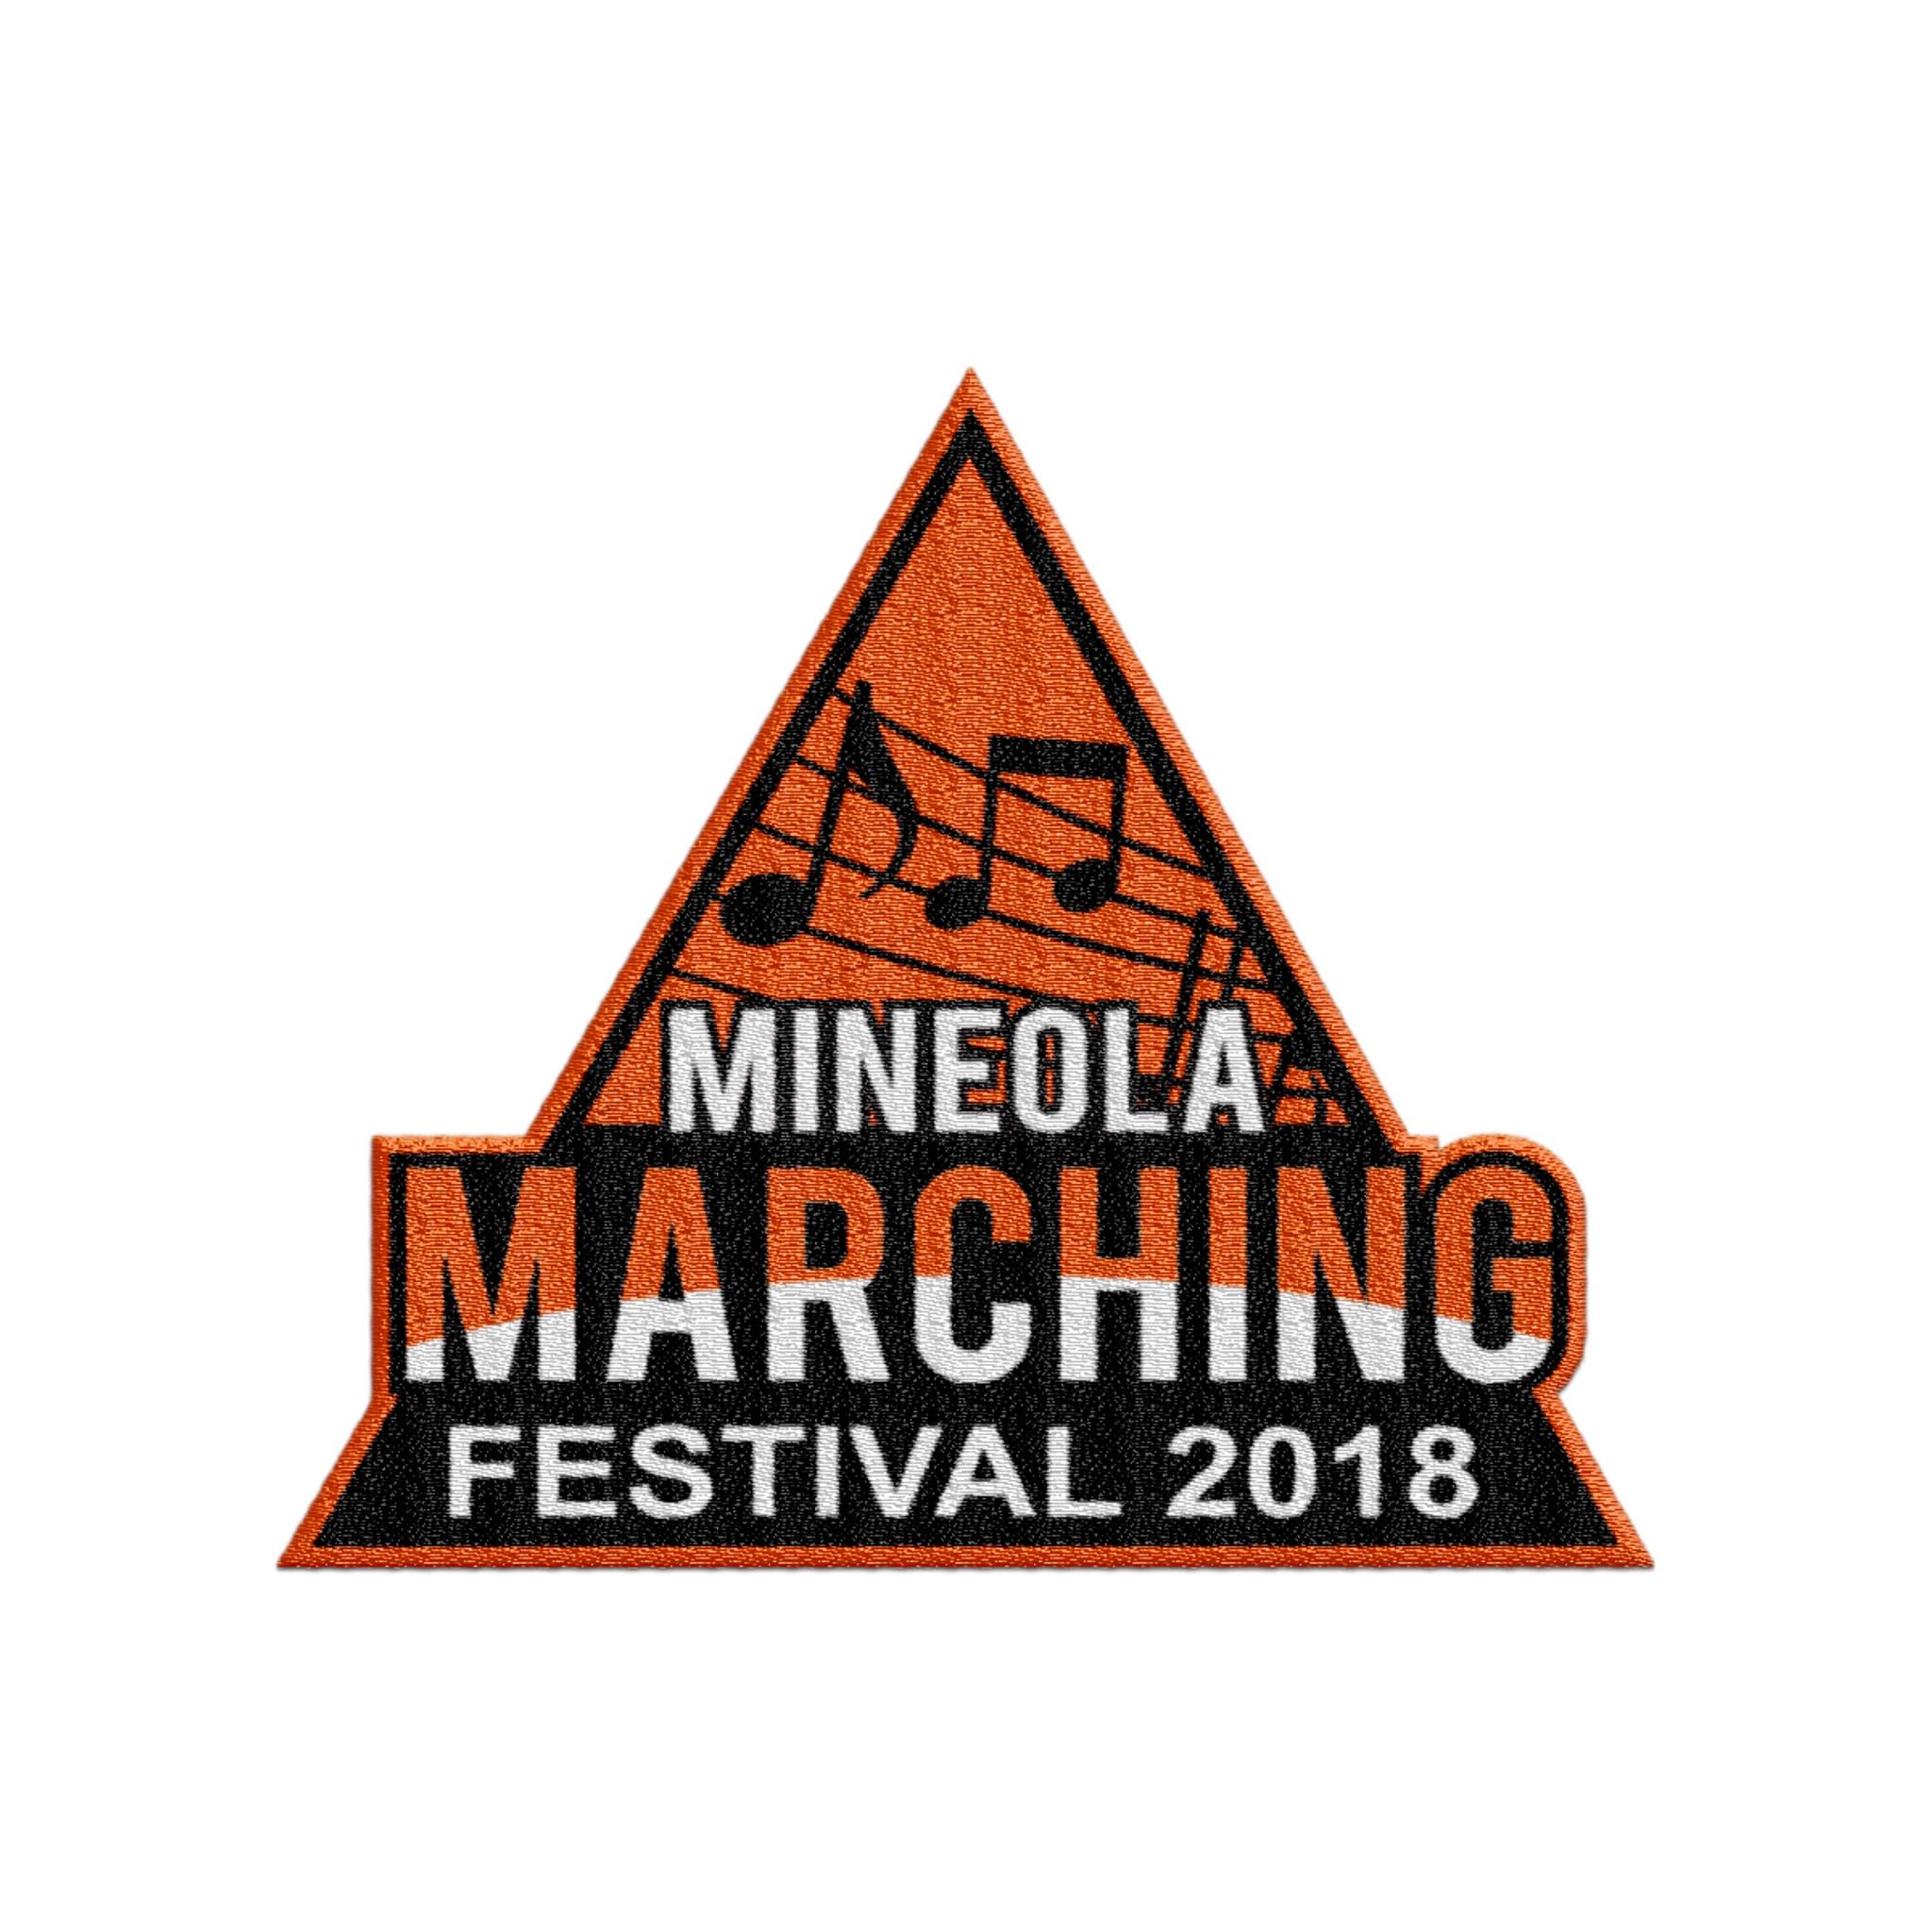 2018 Mineola Marching Festival Event Patch